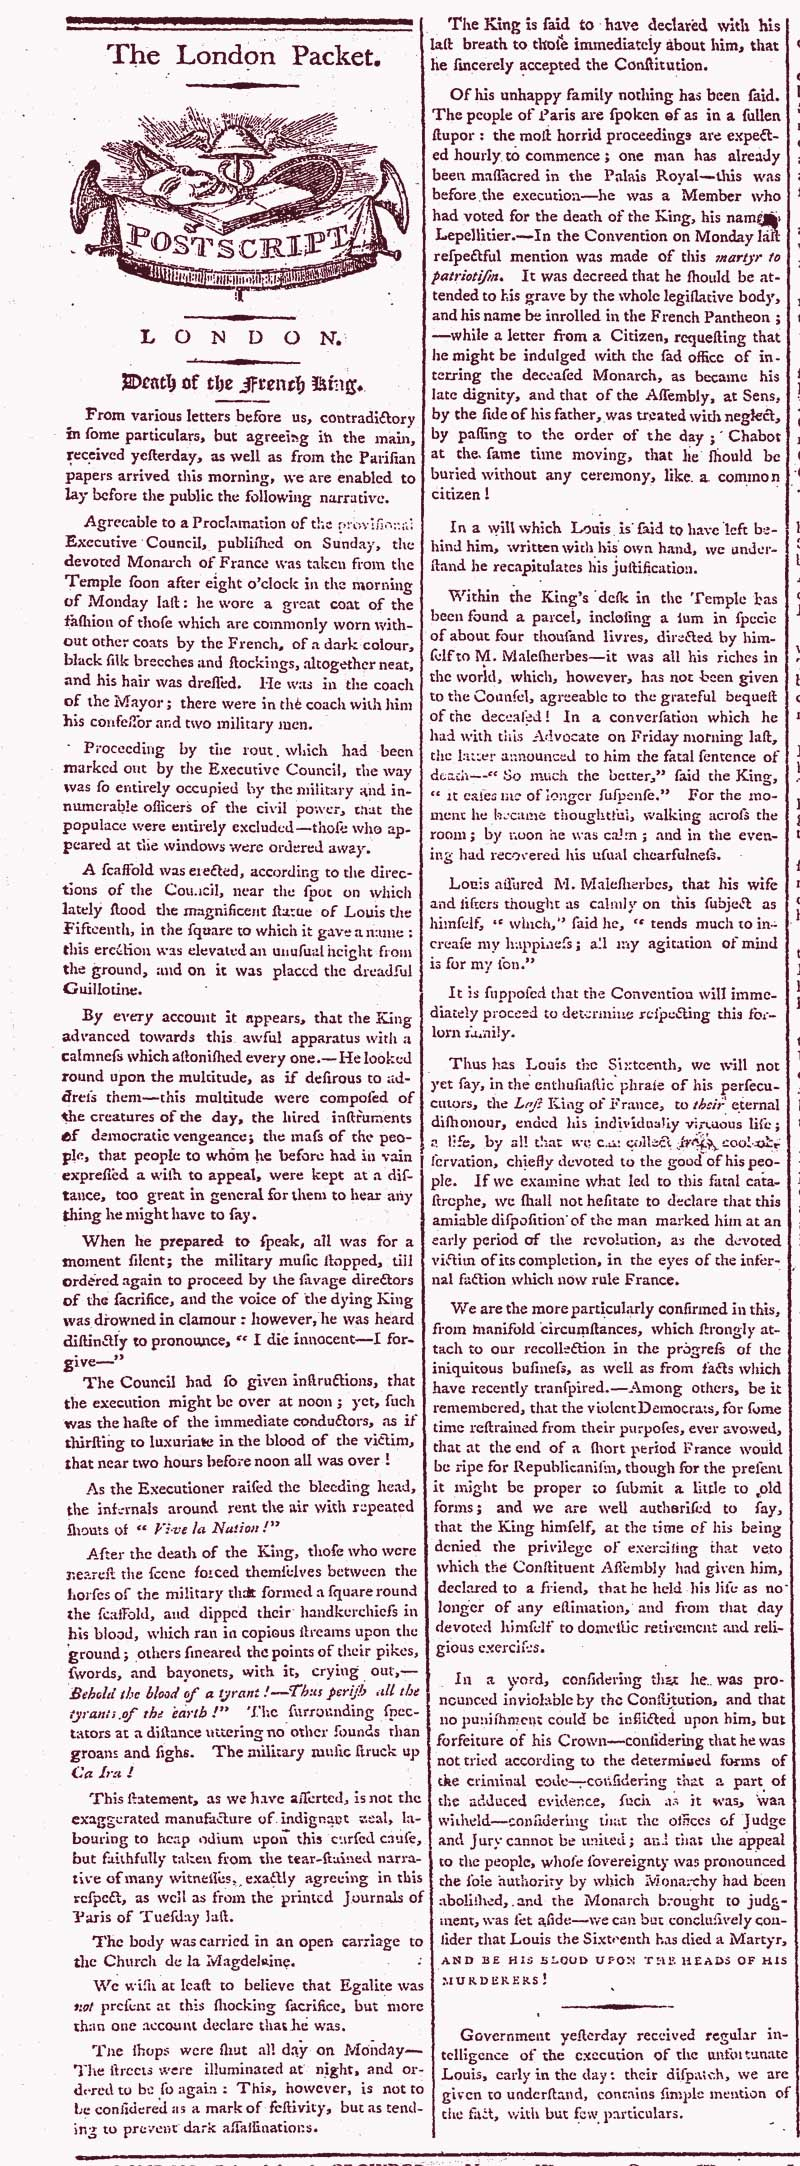 Newspaper report of the execution of French King Louis XVI, January 1793